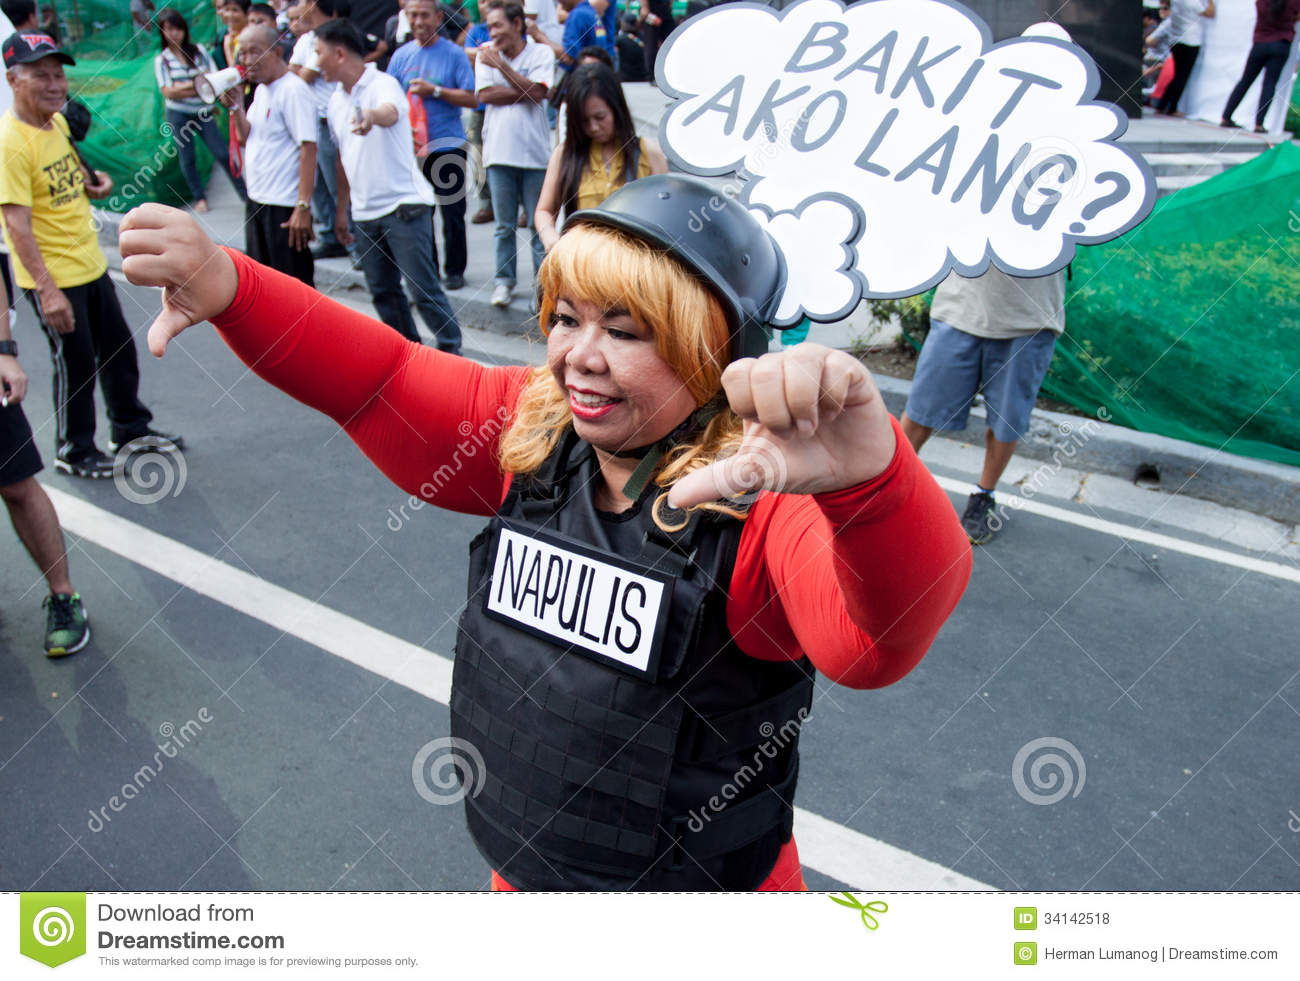 Graft and corruption protest in Manila, Philippines